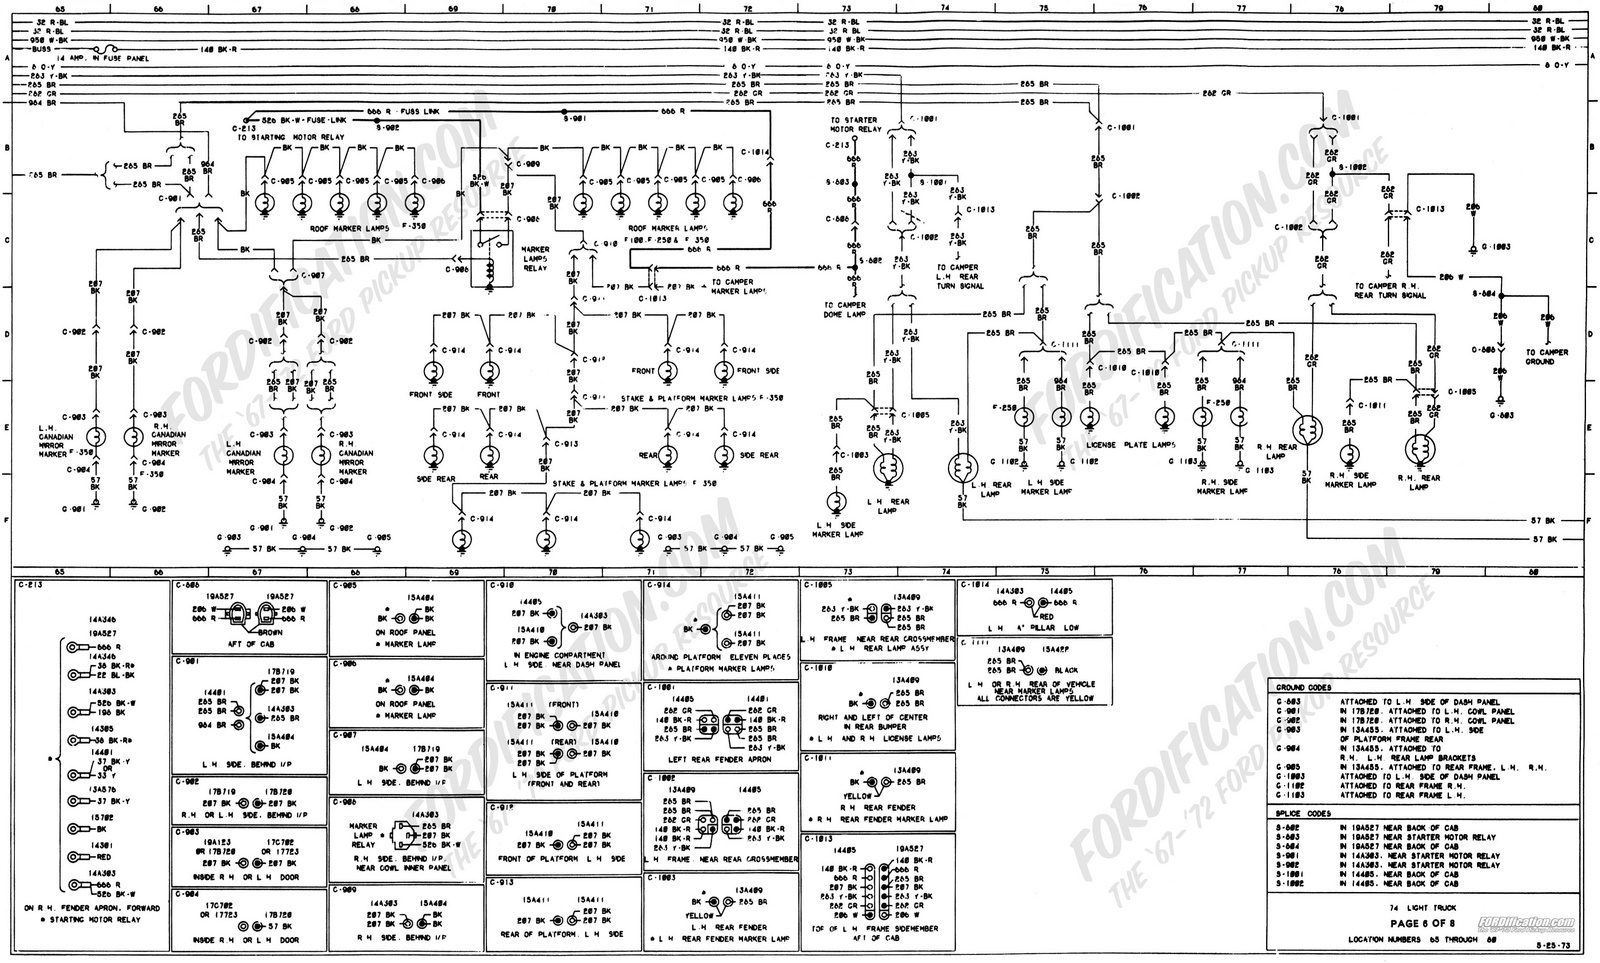 Fabulous 00 Ford F150 Wiring Diagram Wiring Diagram Wiring Cloud Hisonuggs Outletorg